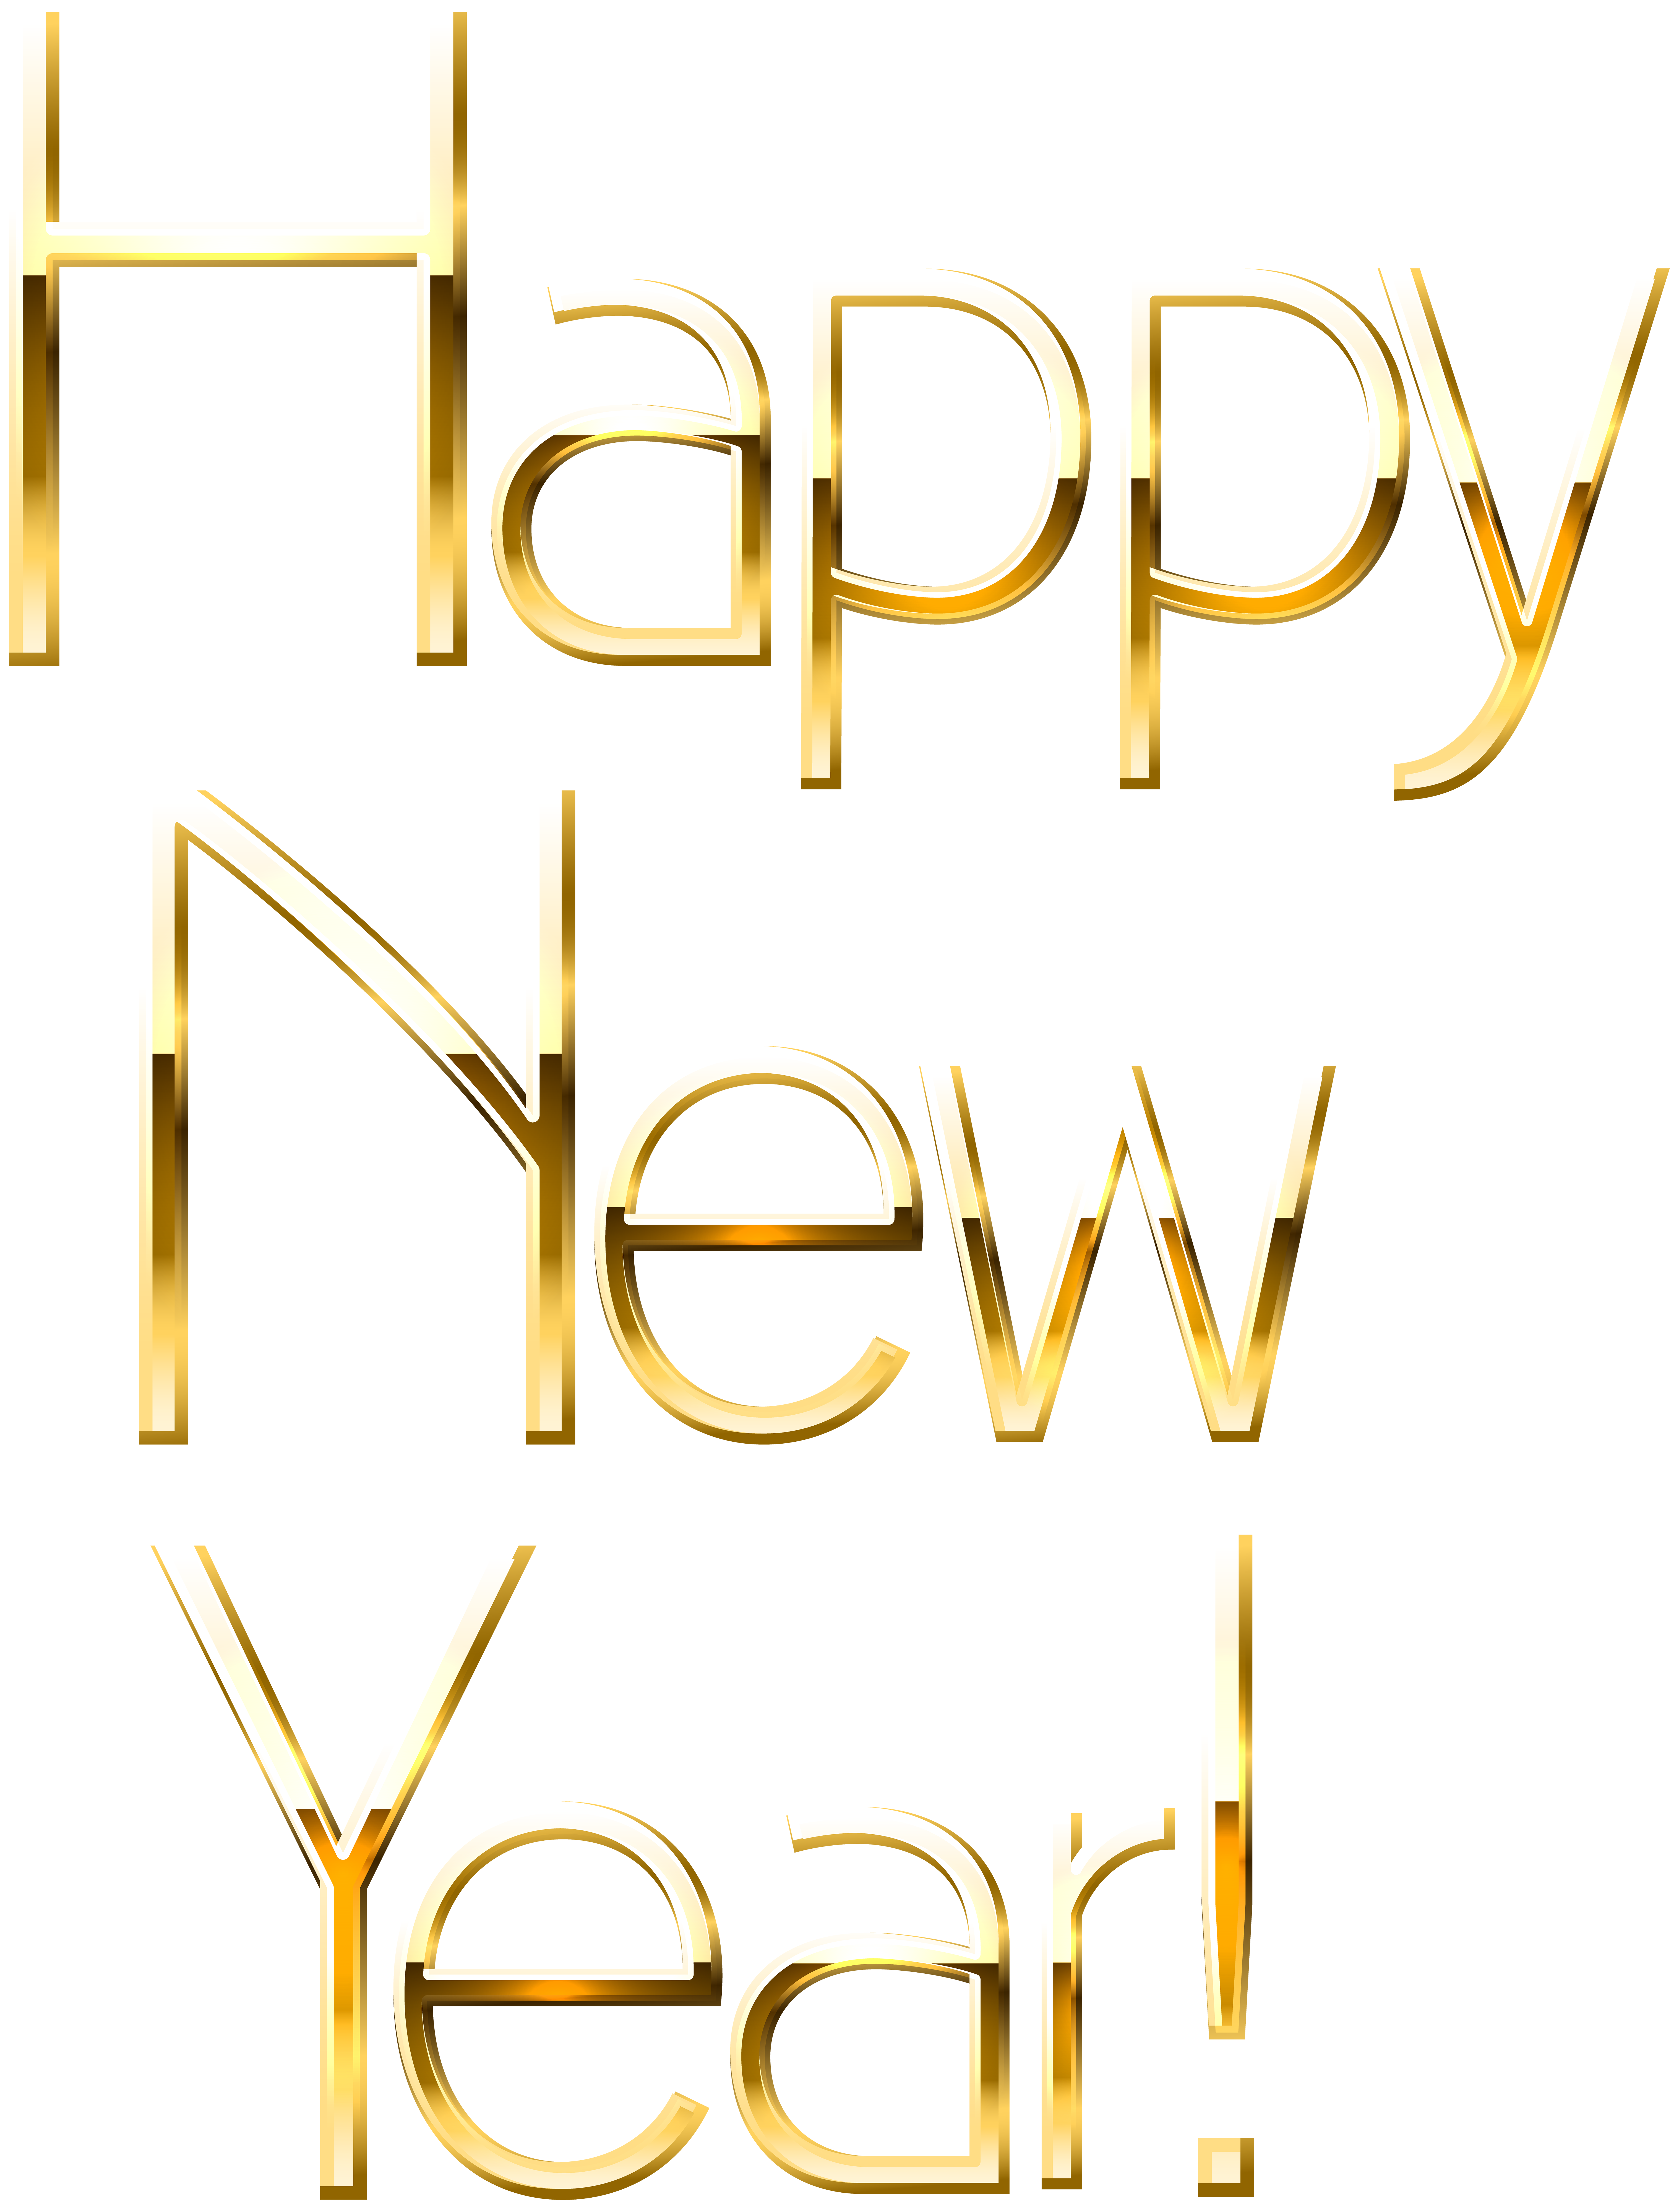 Clip art image gallery. Happy new year gold png clipart free download